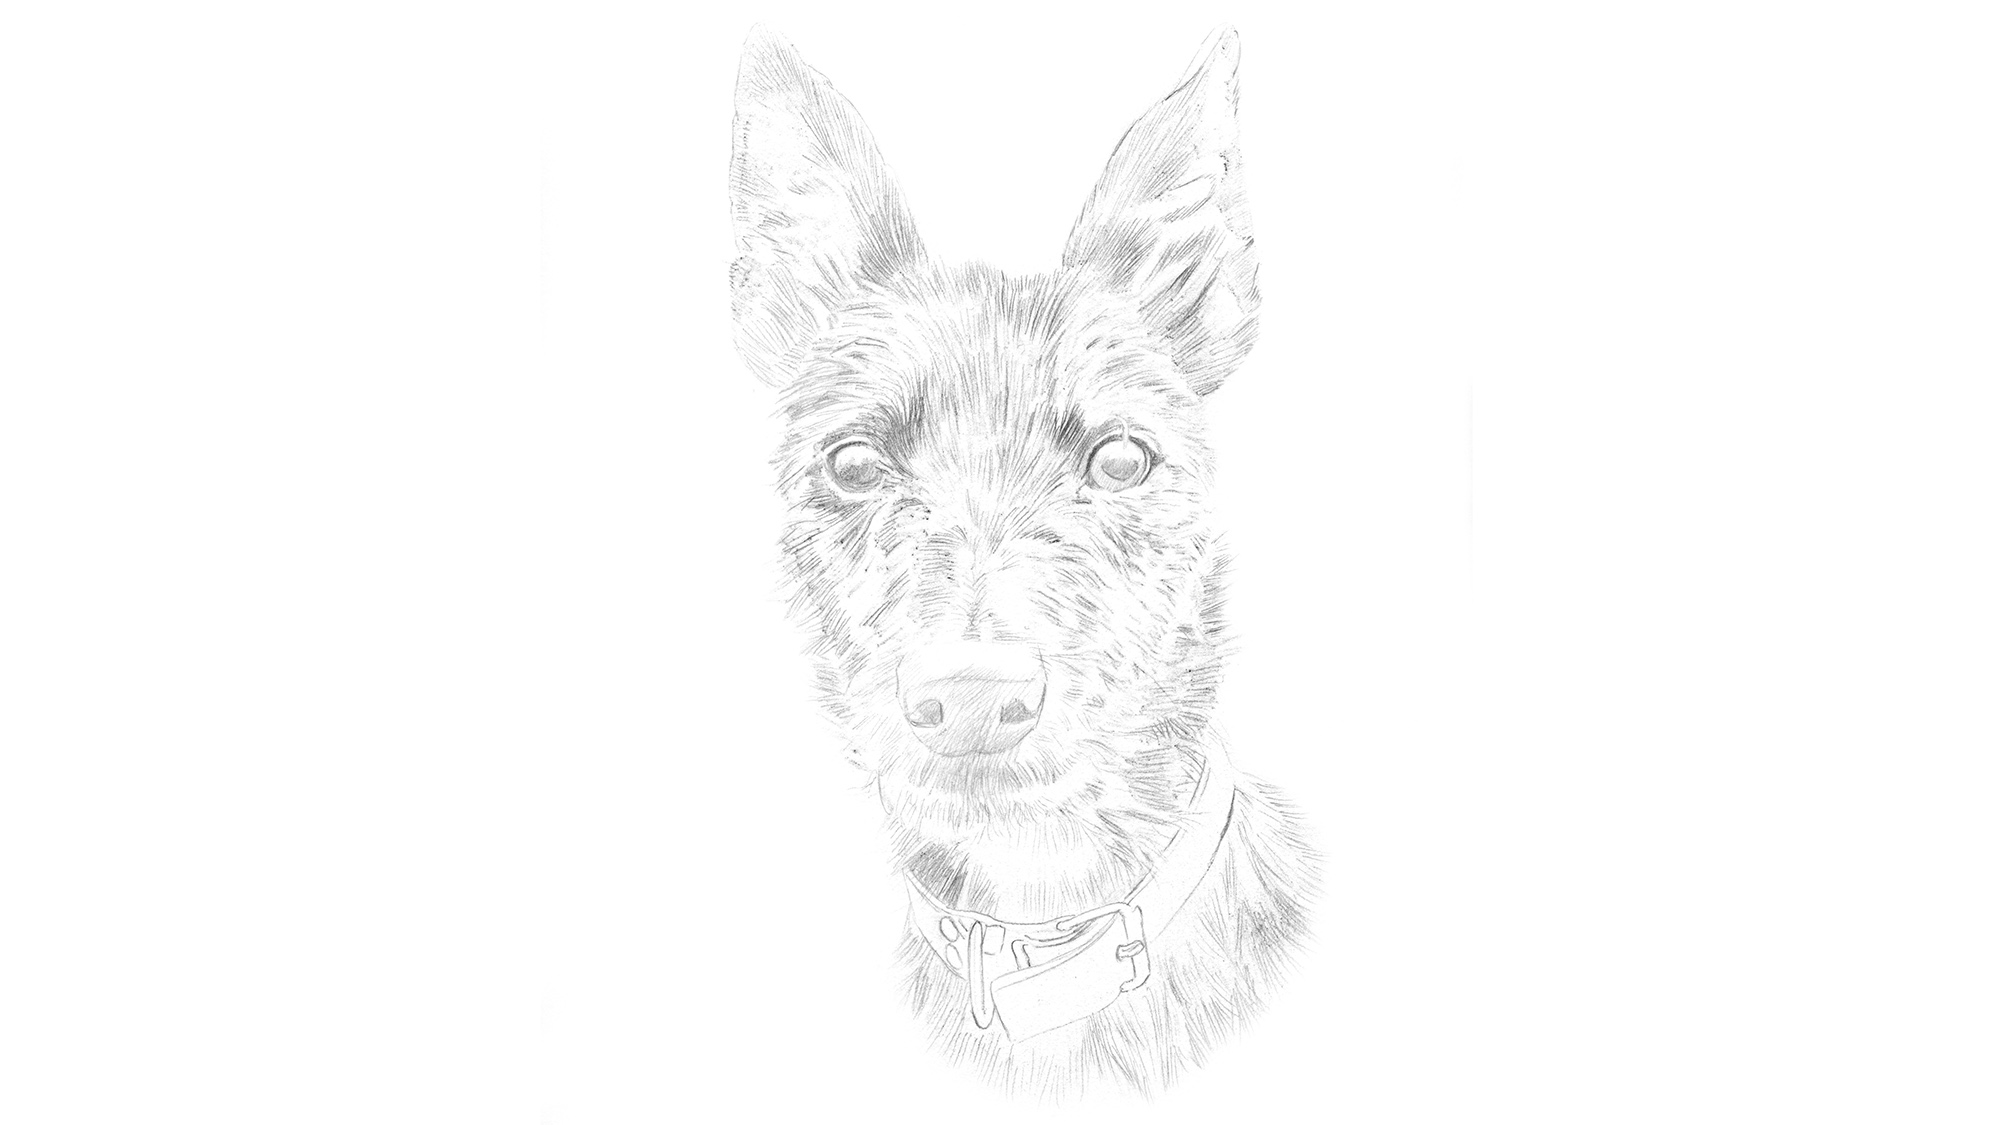 how to draw a dog portrait